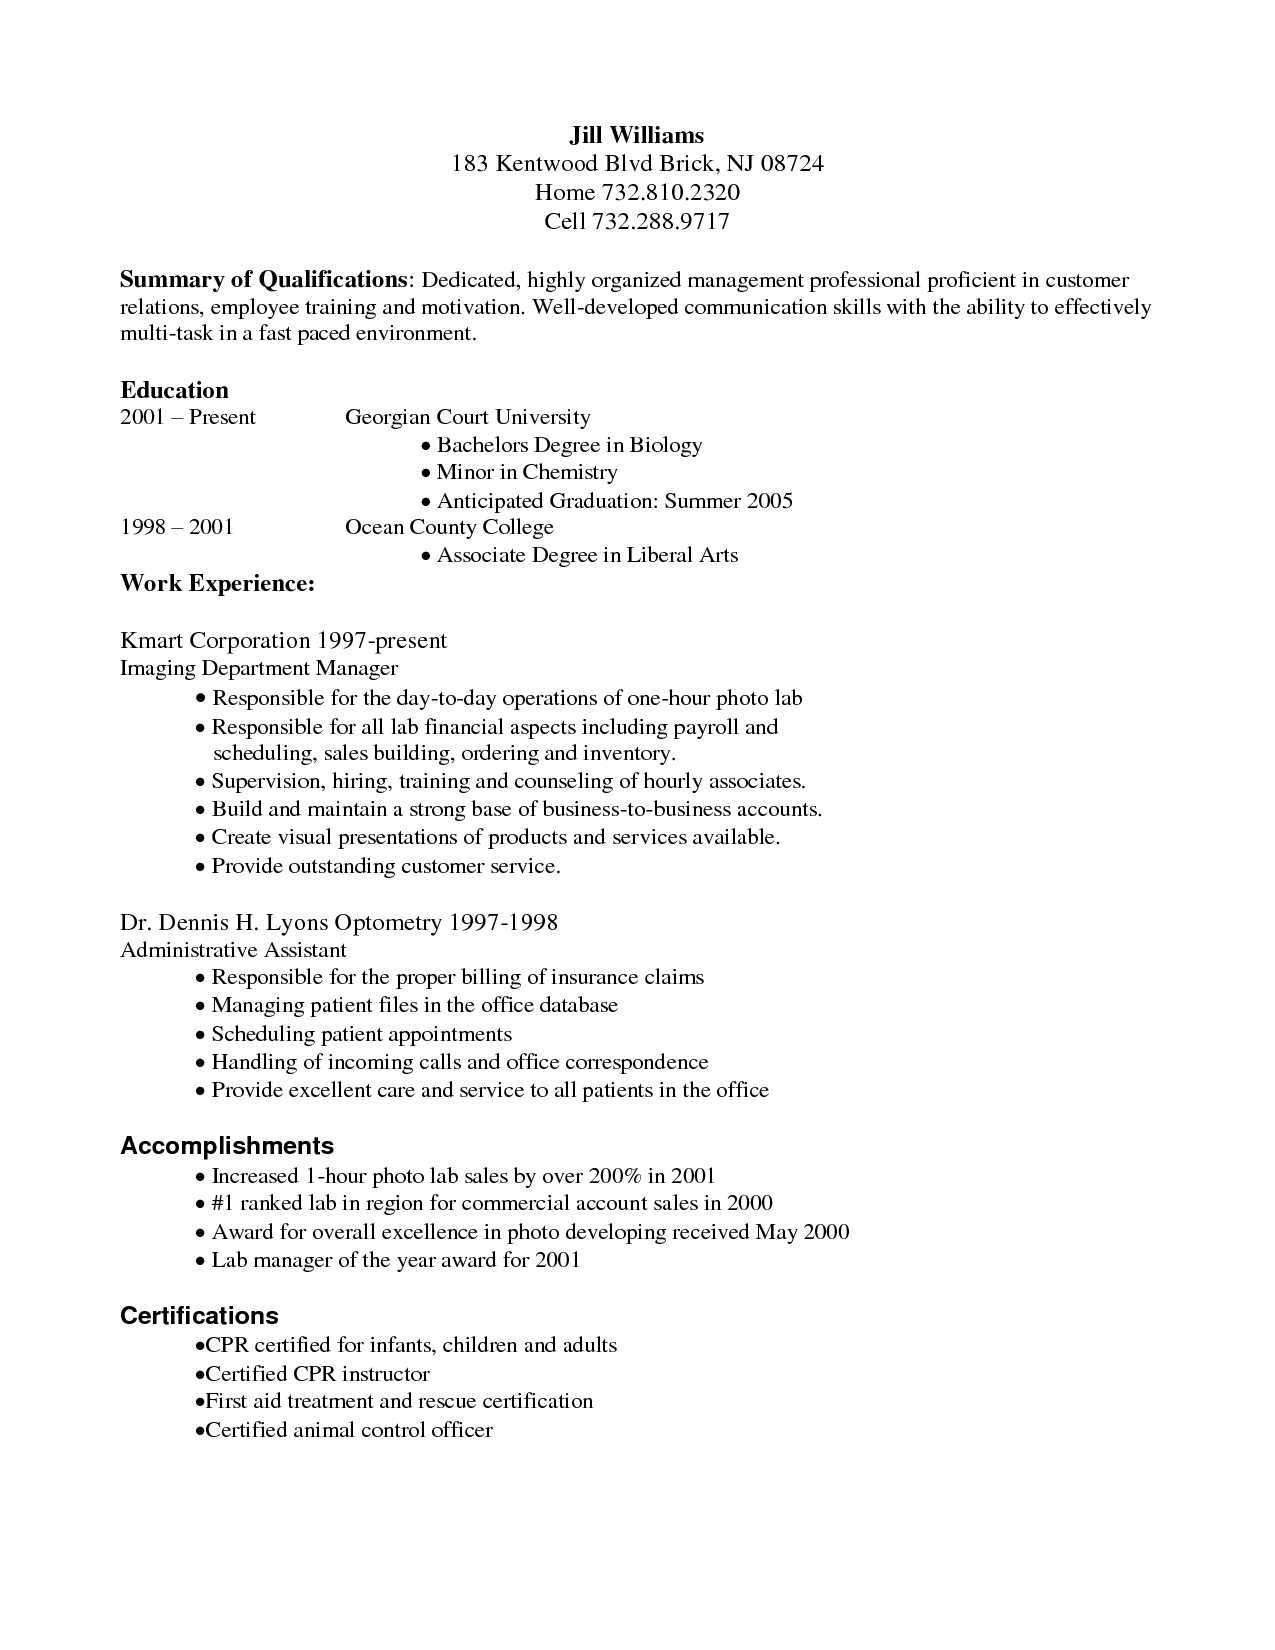 Samples Of Resume Summary Medical Billing And Coding Resume Example